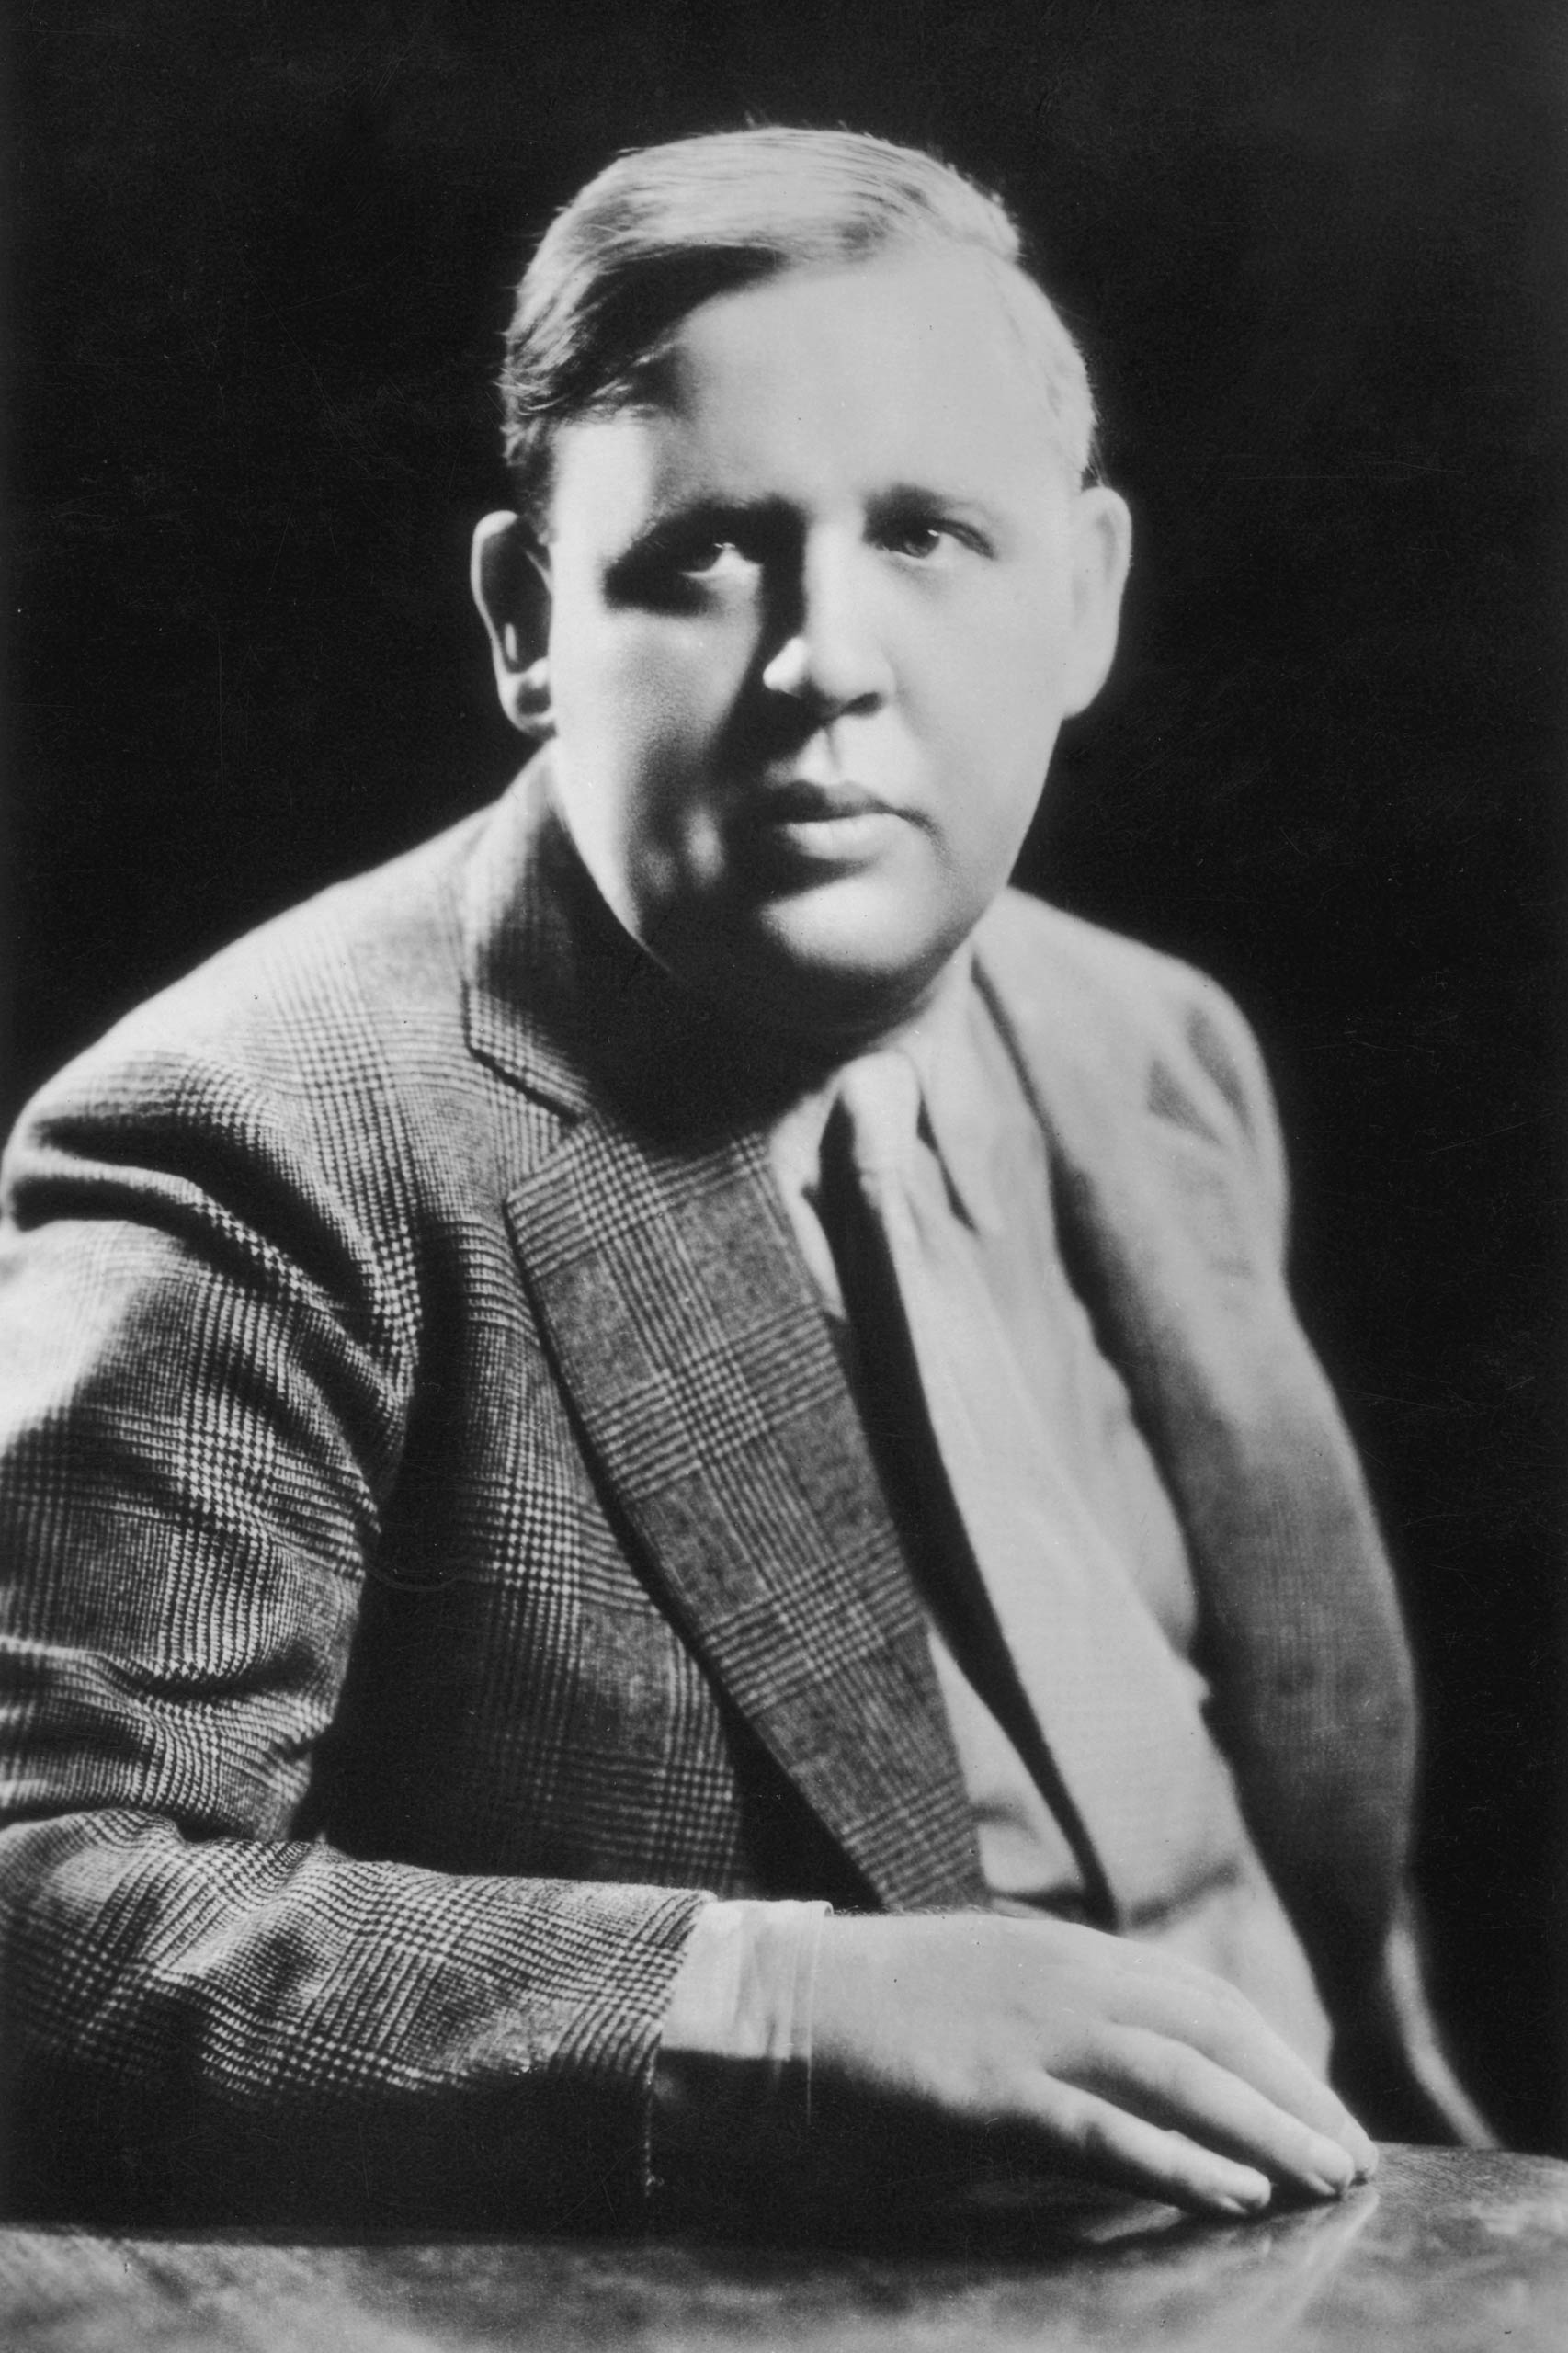 <strong>1934: Charles Laughton - <i>The Private Life of Henry VIII</i></strong>